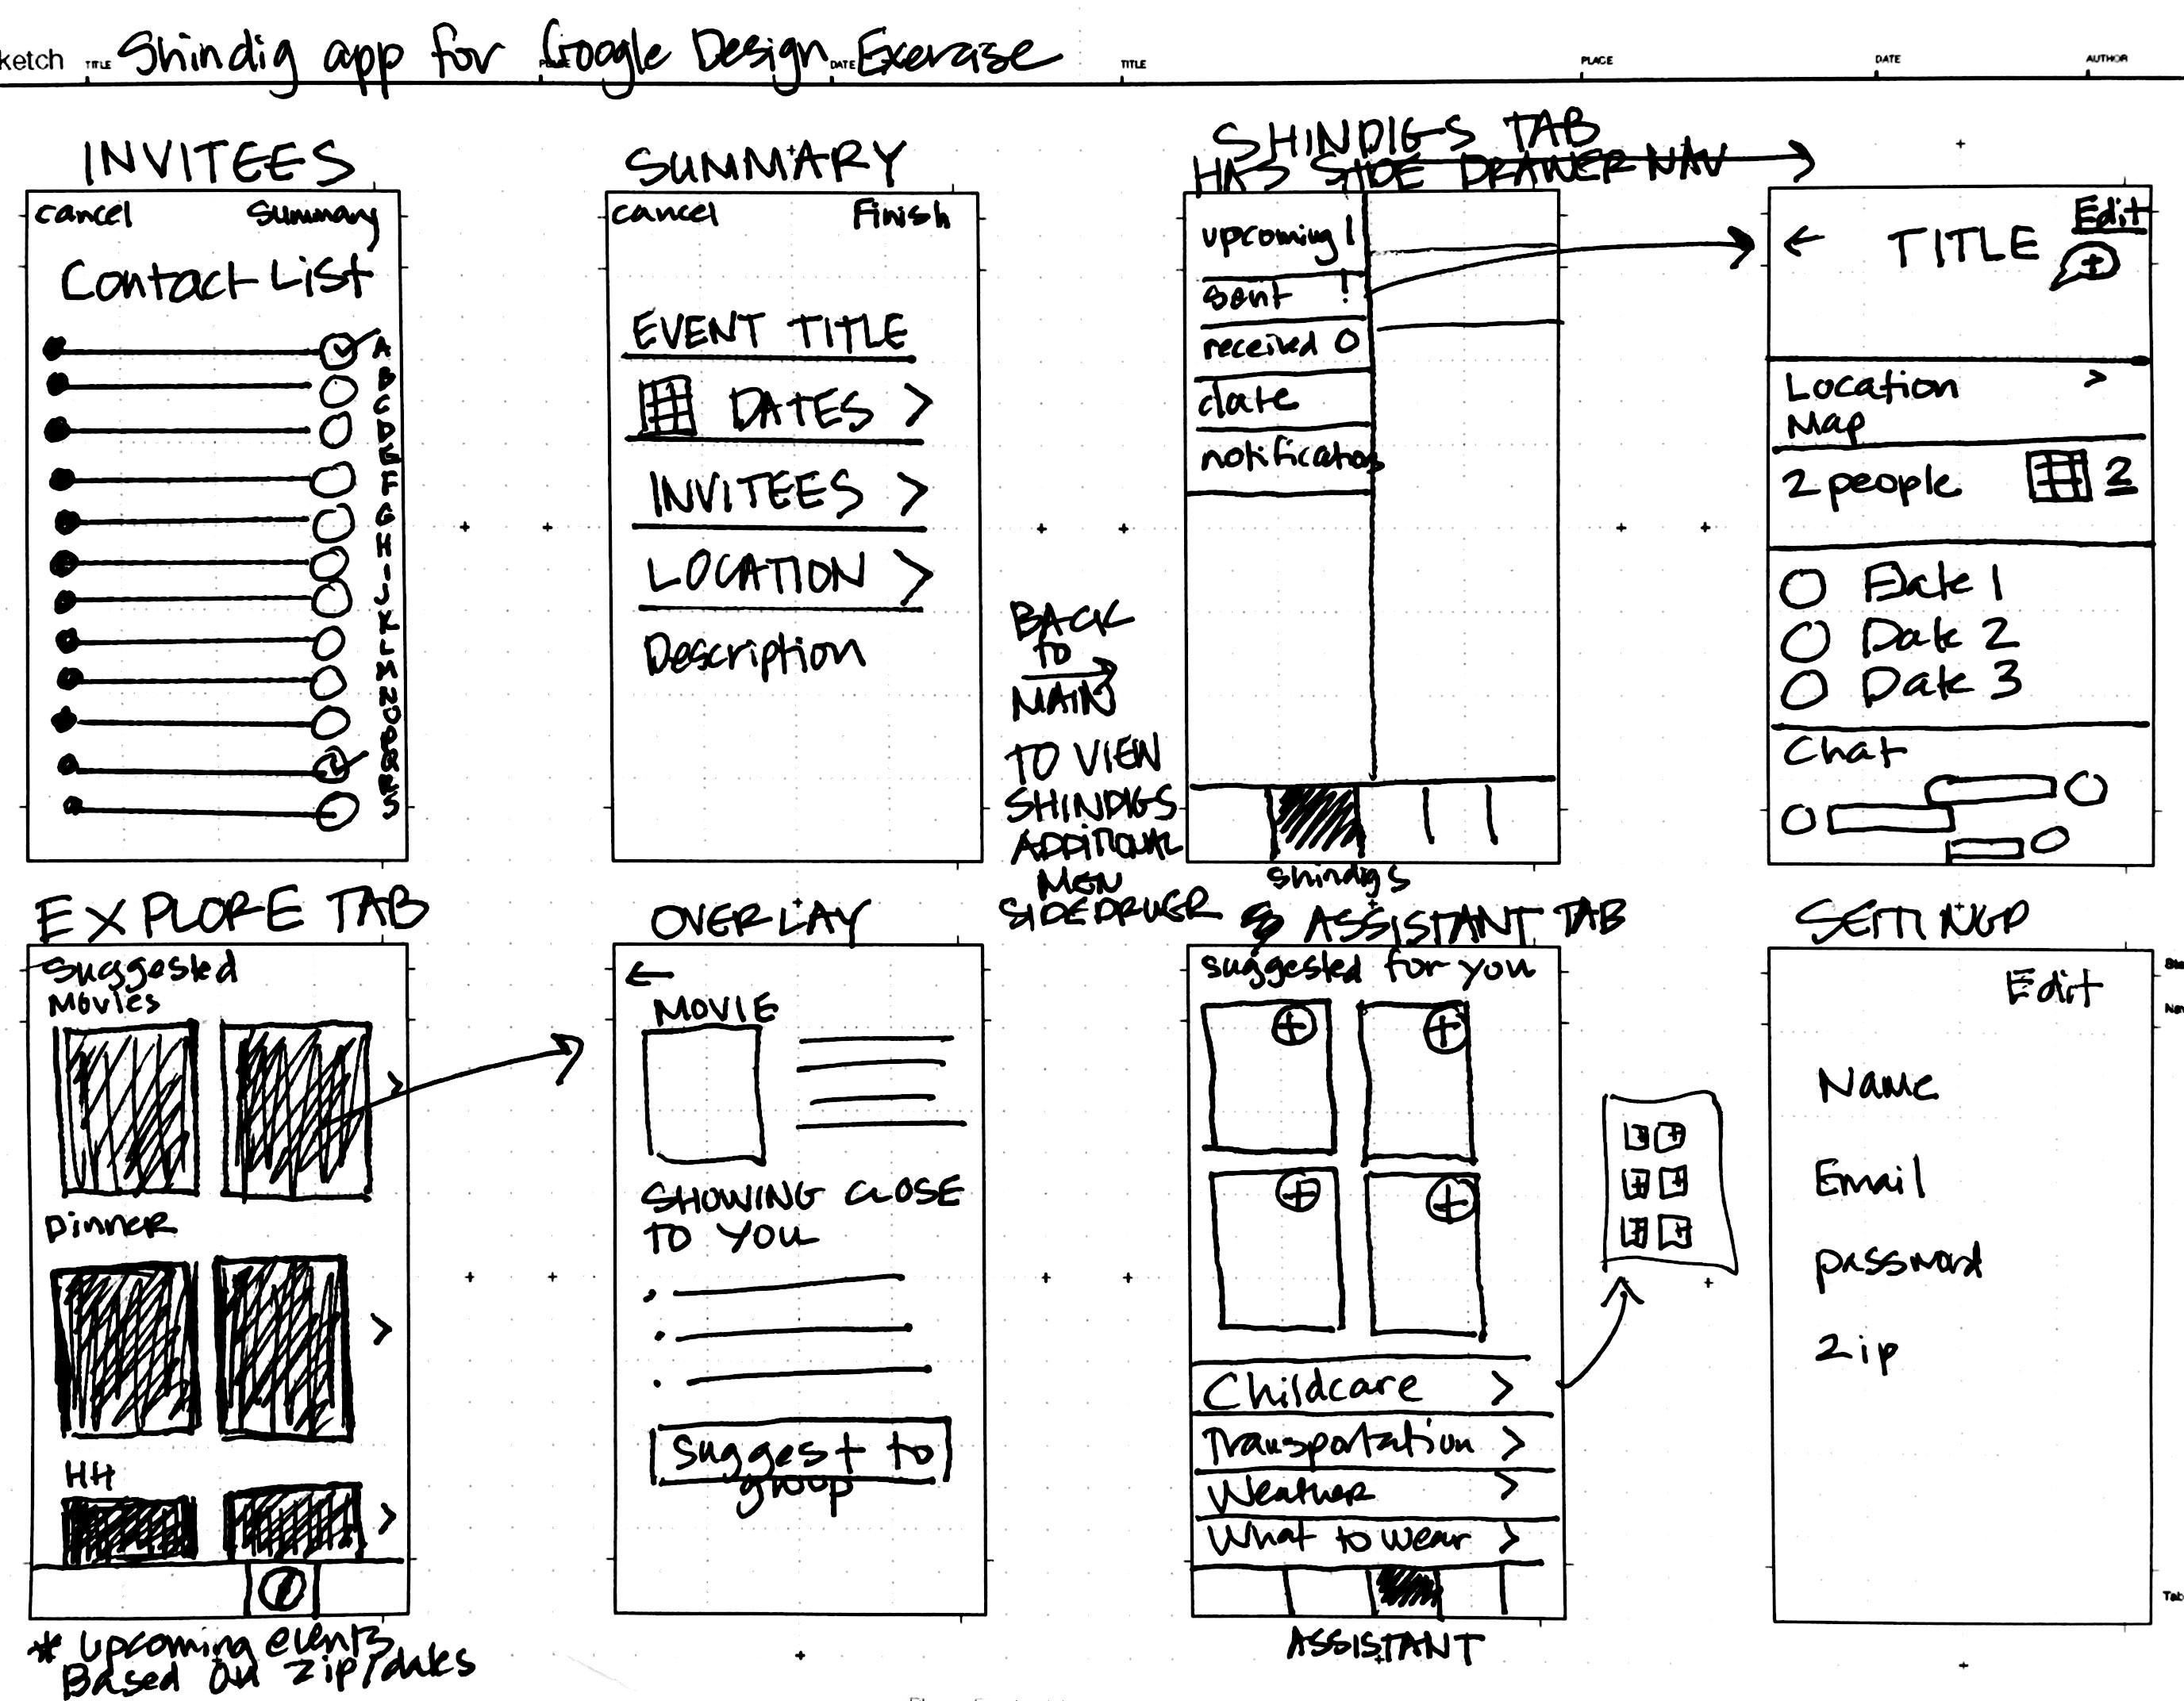 shindig tab bar menu sketch_2